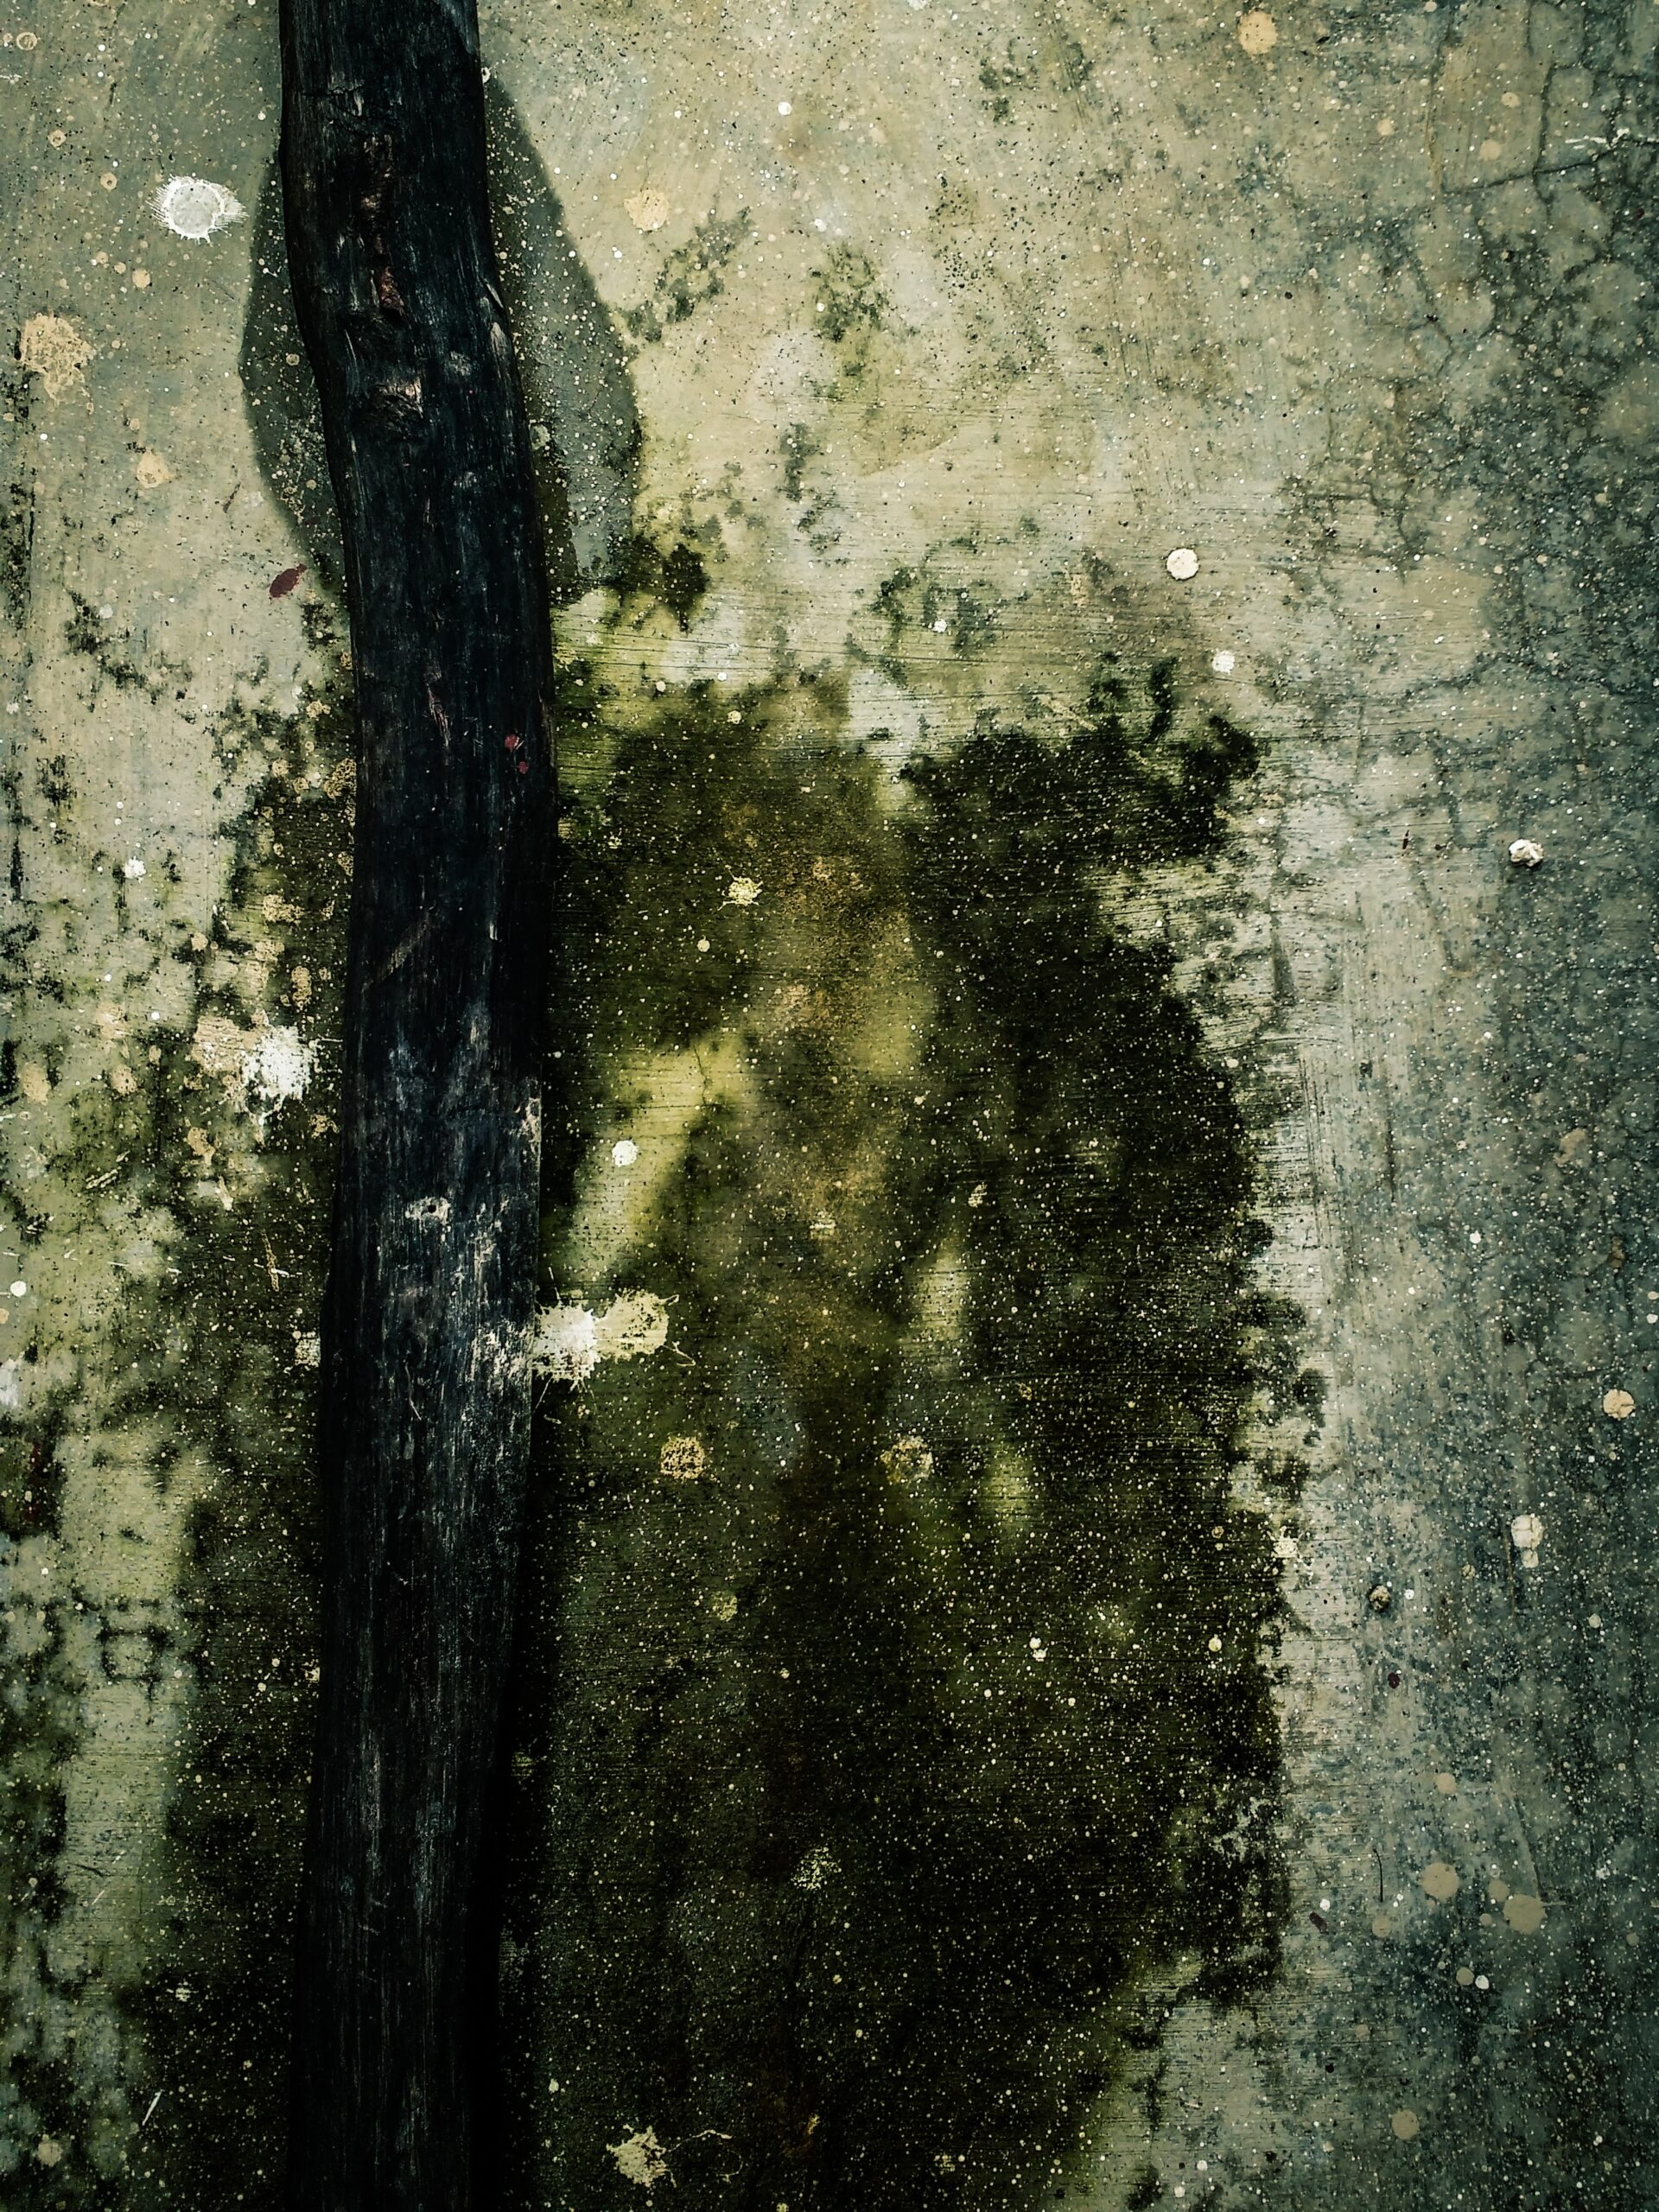 Should I Treat For Mold Myself Or Call The Pros?